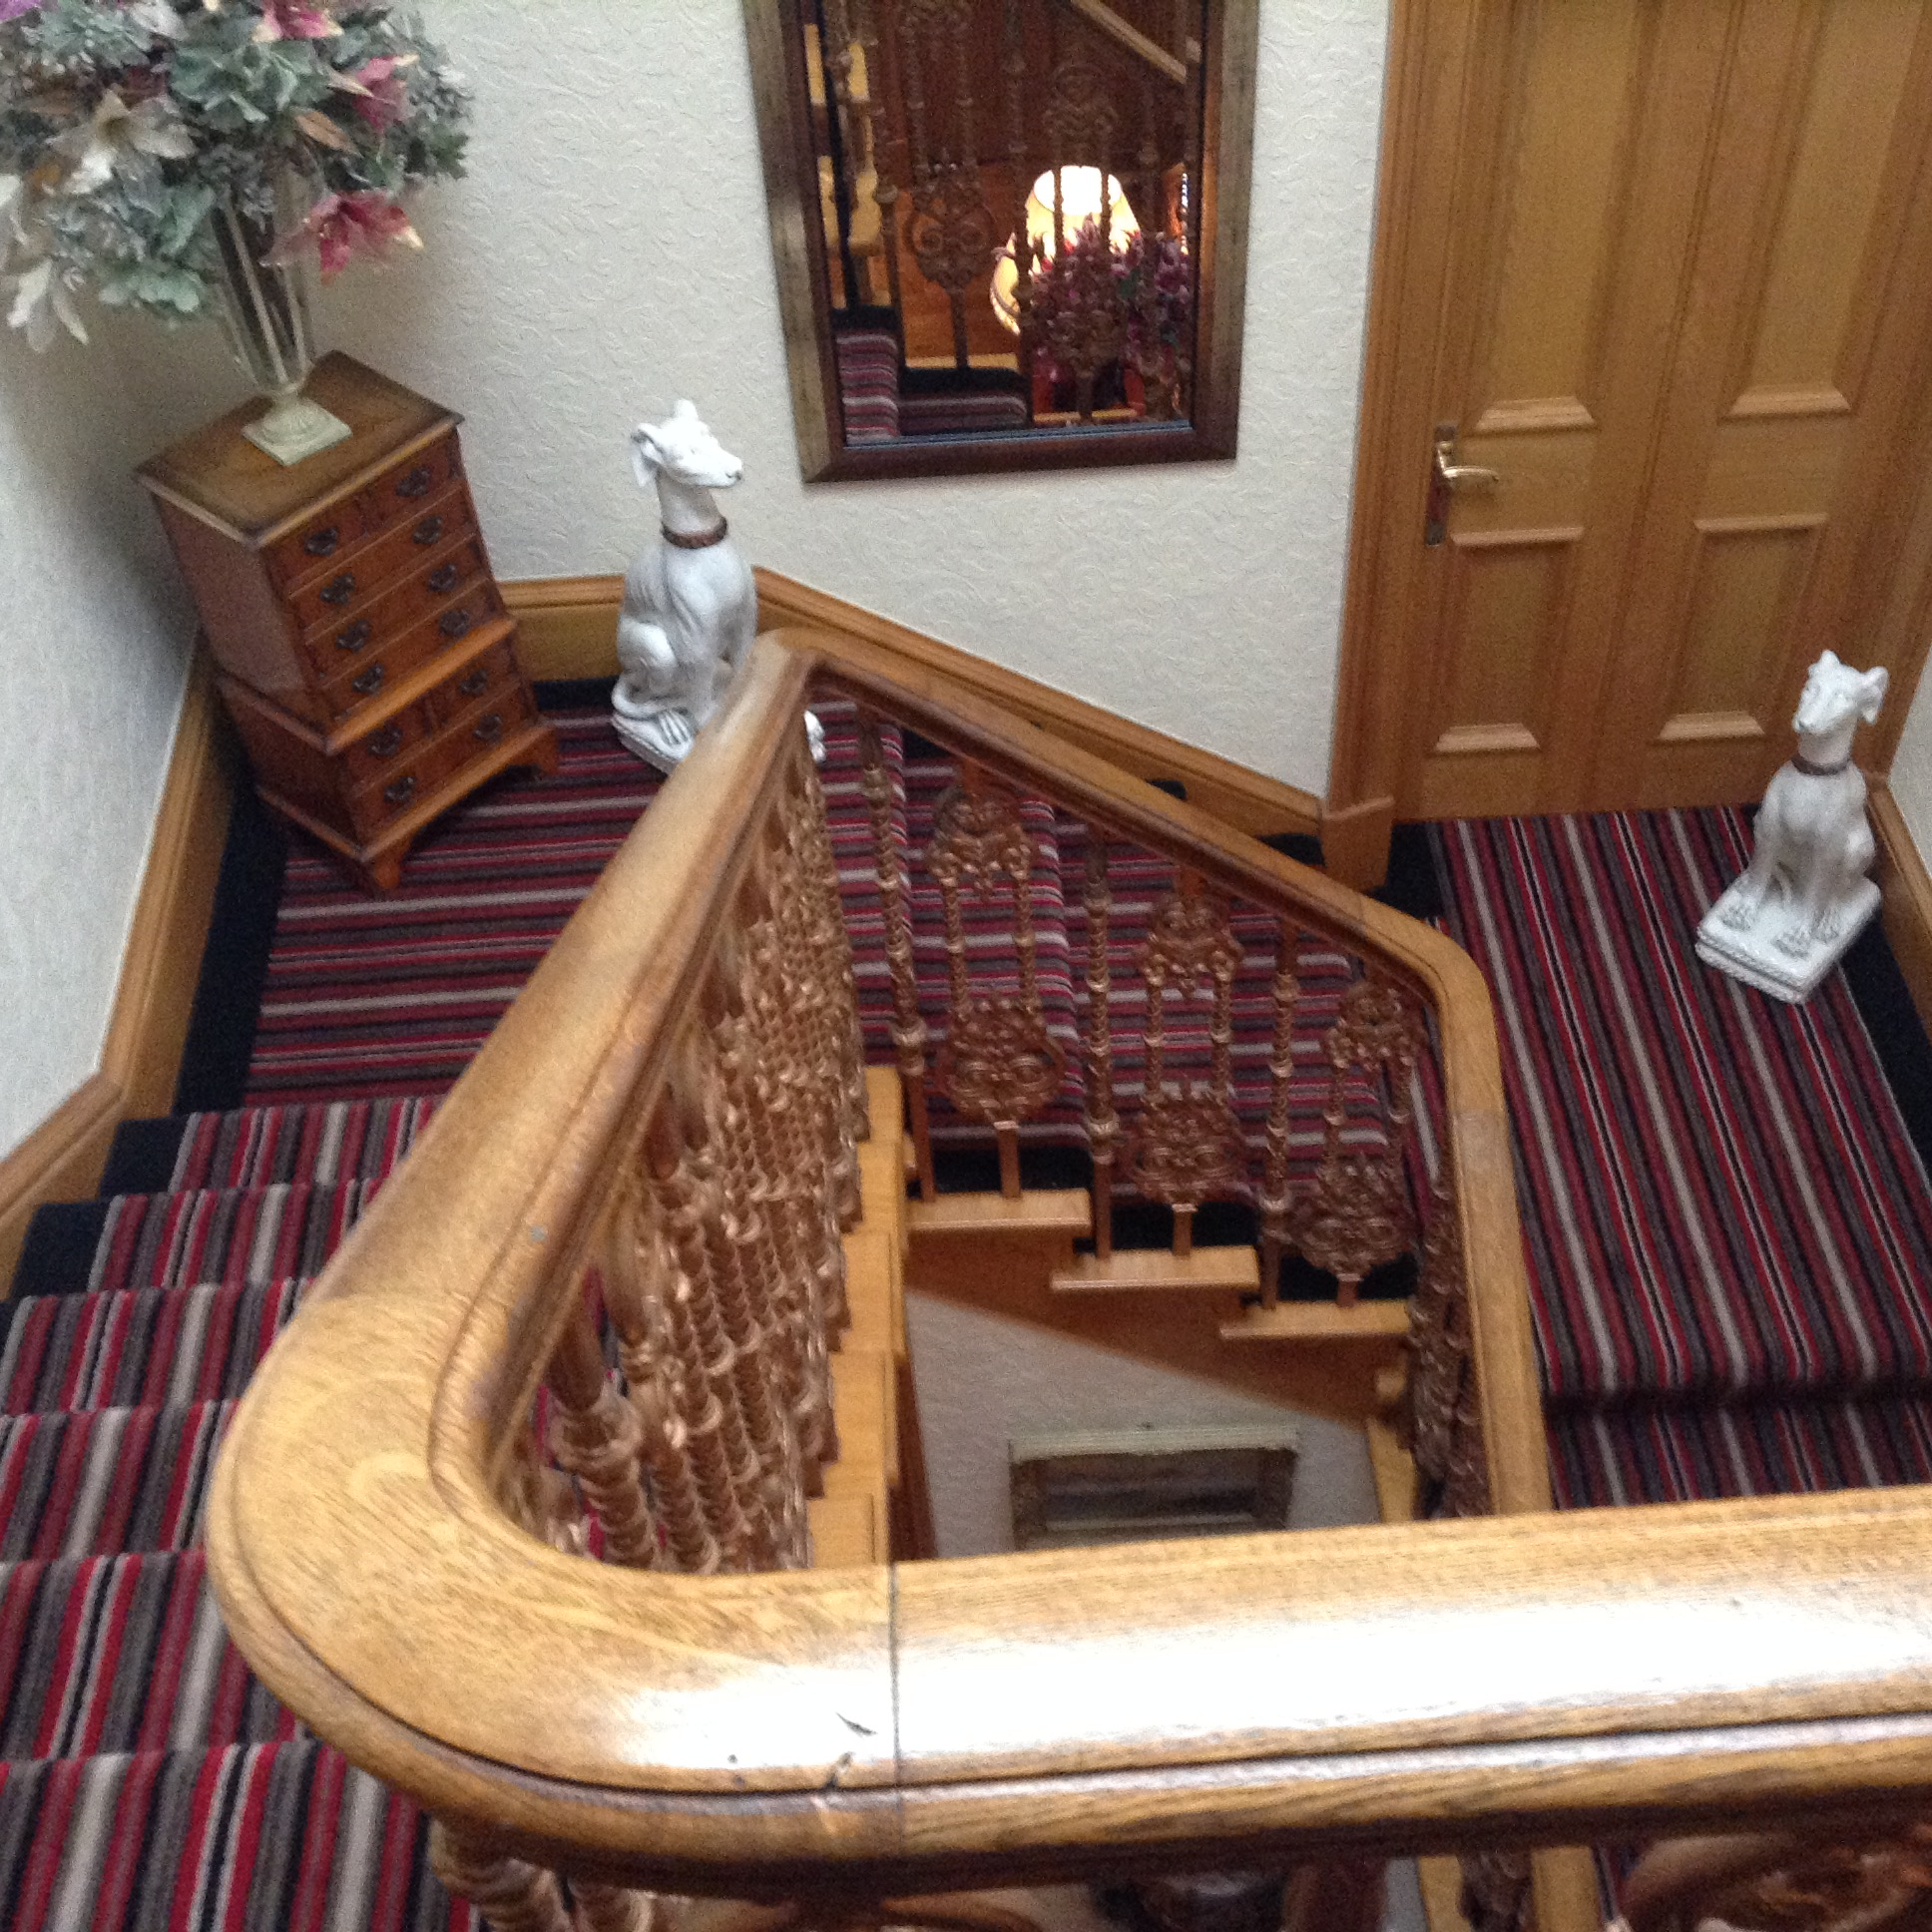 Castlemead Velvet Stripe Looking Great On These Stairs